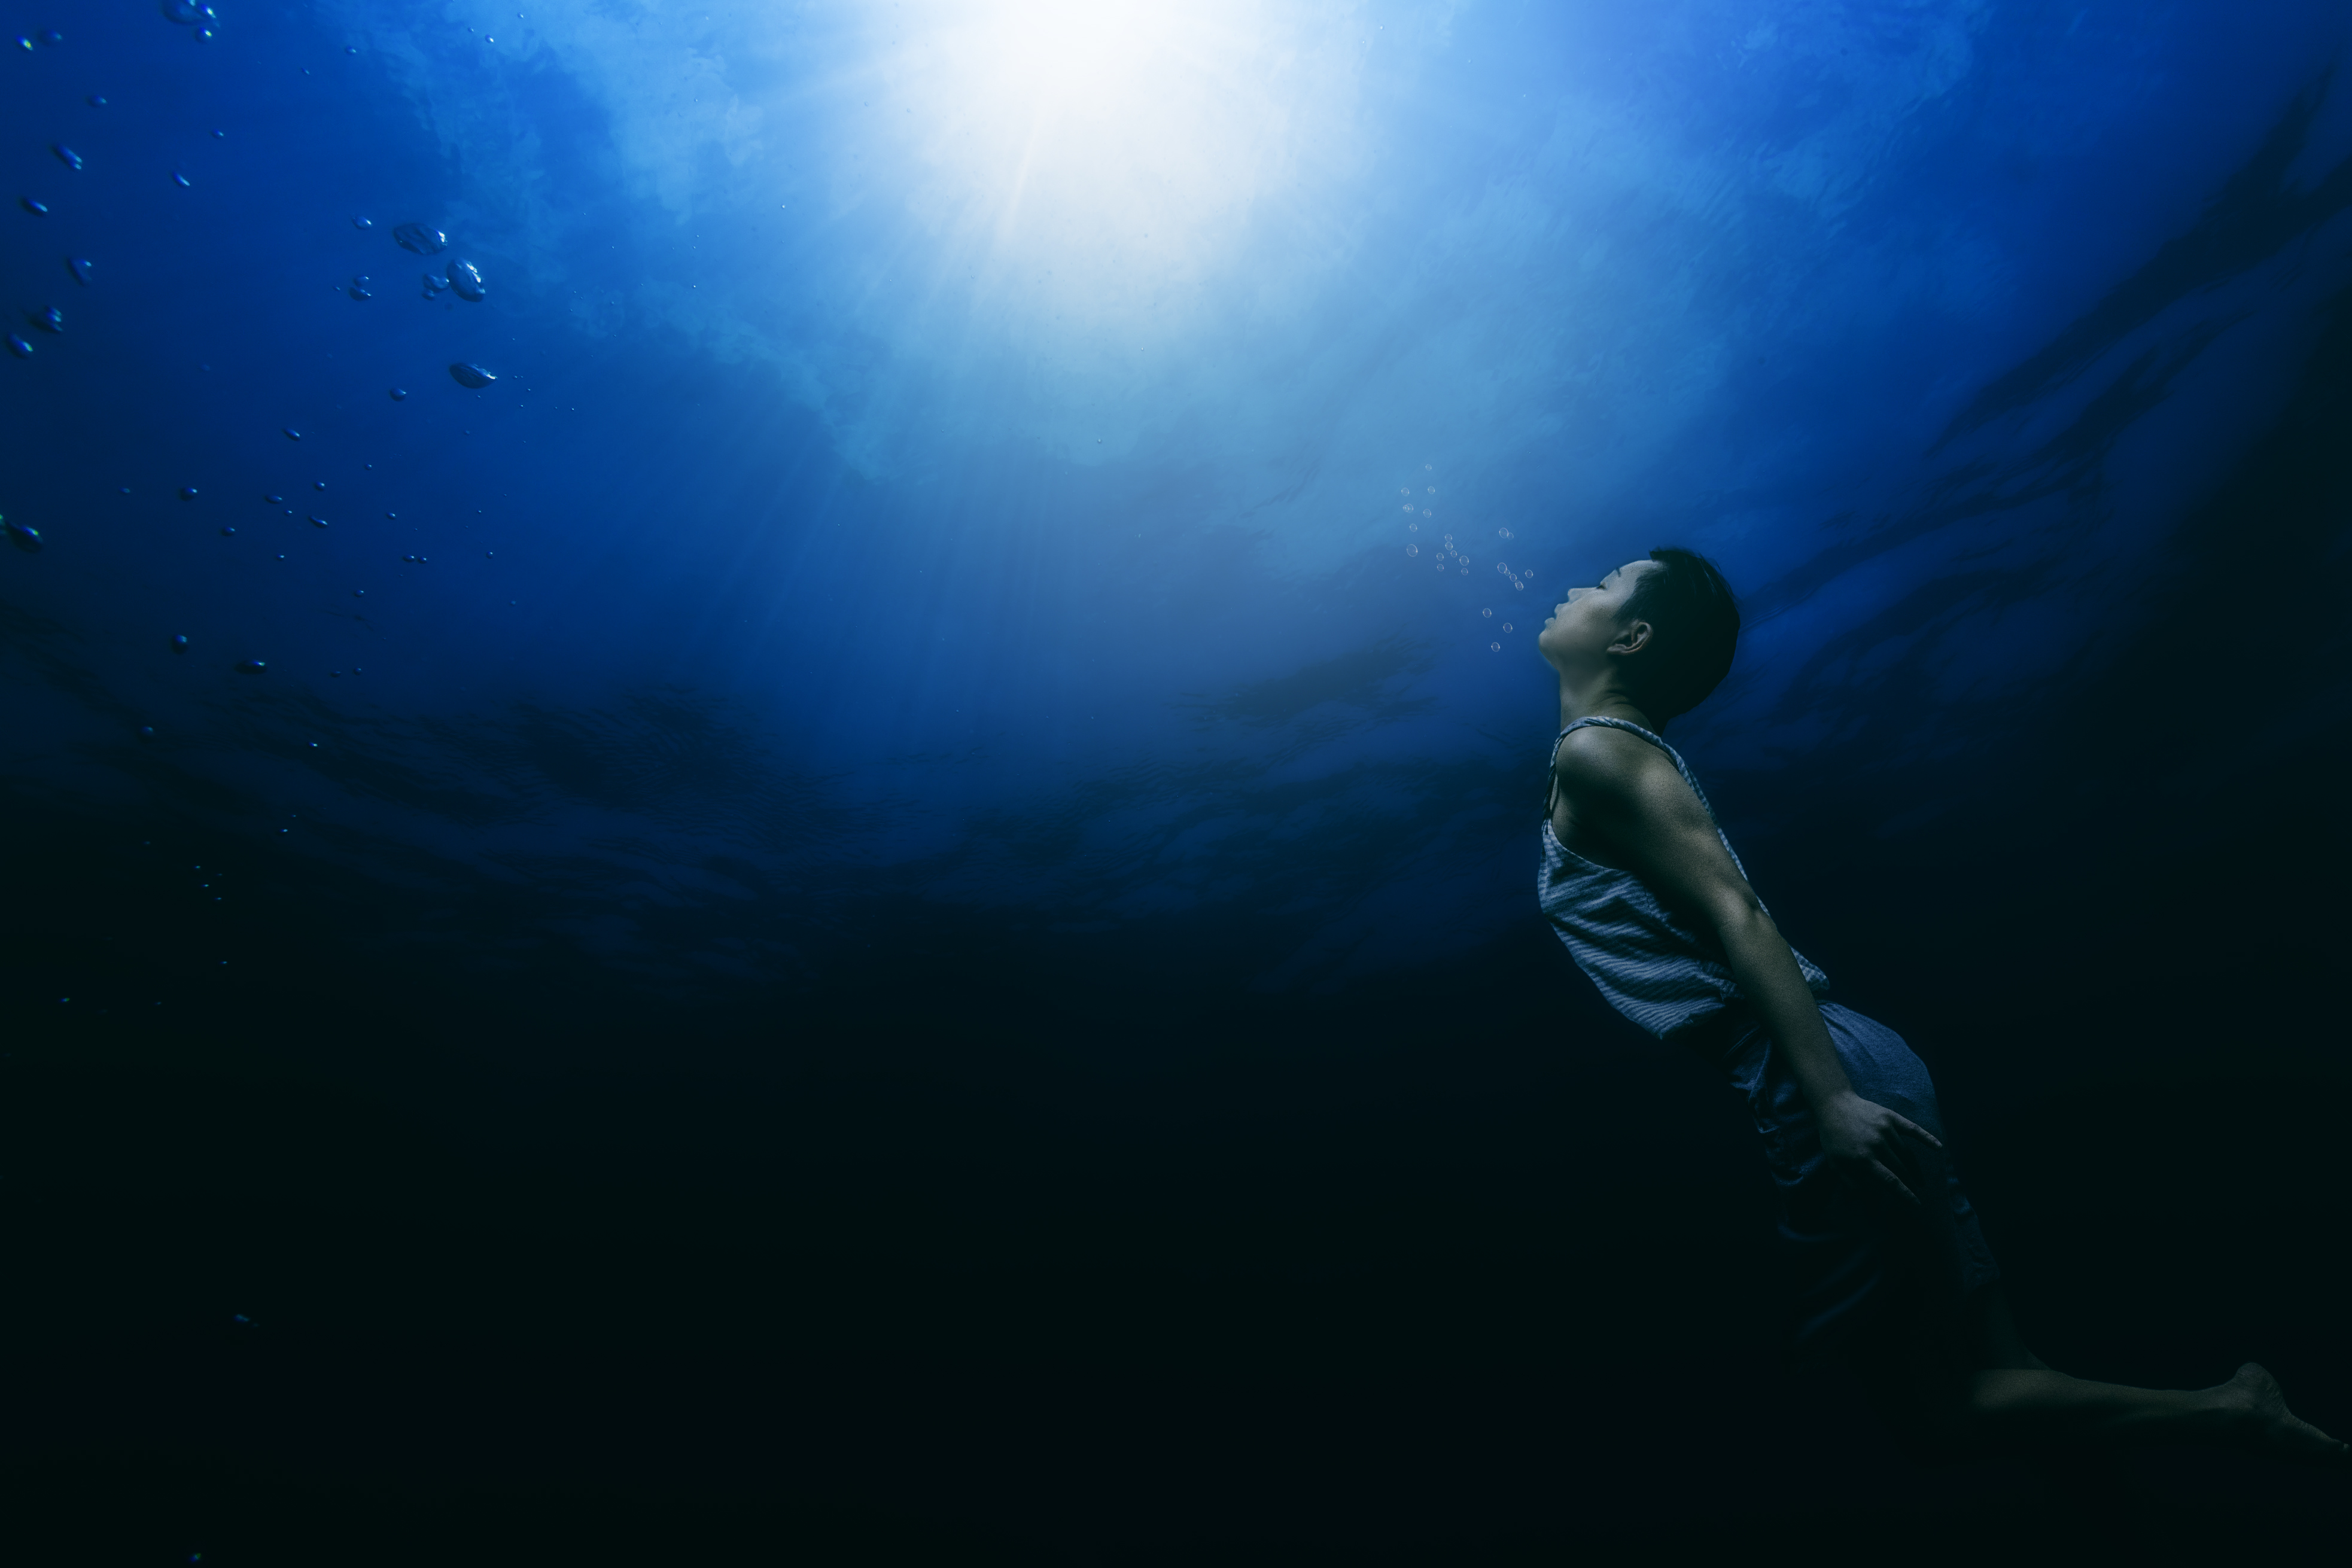 Falling Water Hd Wallpaper Painting Of A Person Swimming Underwater 183 Free Stock Photo